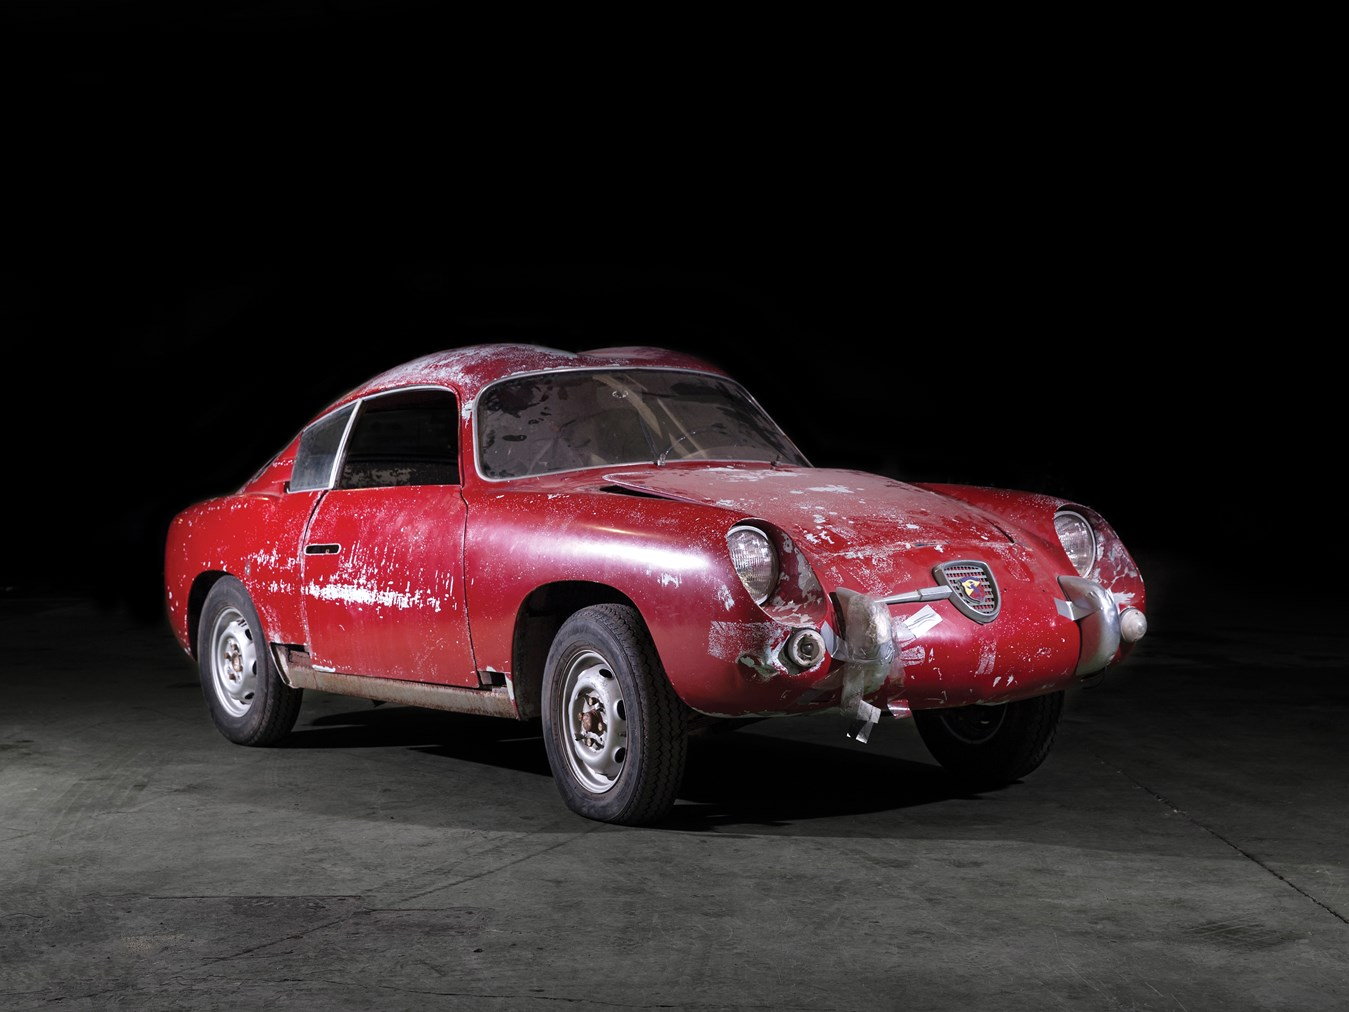 rm sotheby's - 1958 fiat-abarth 750 gt 'double bubble'zagato